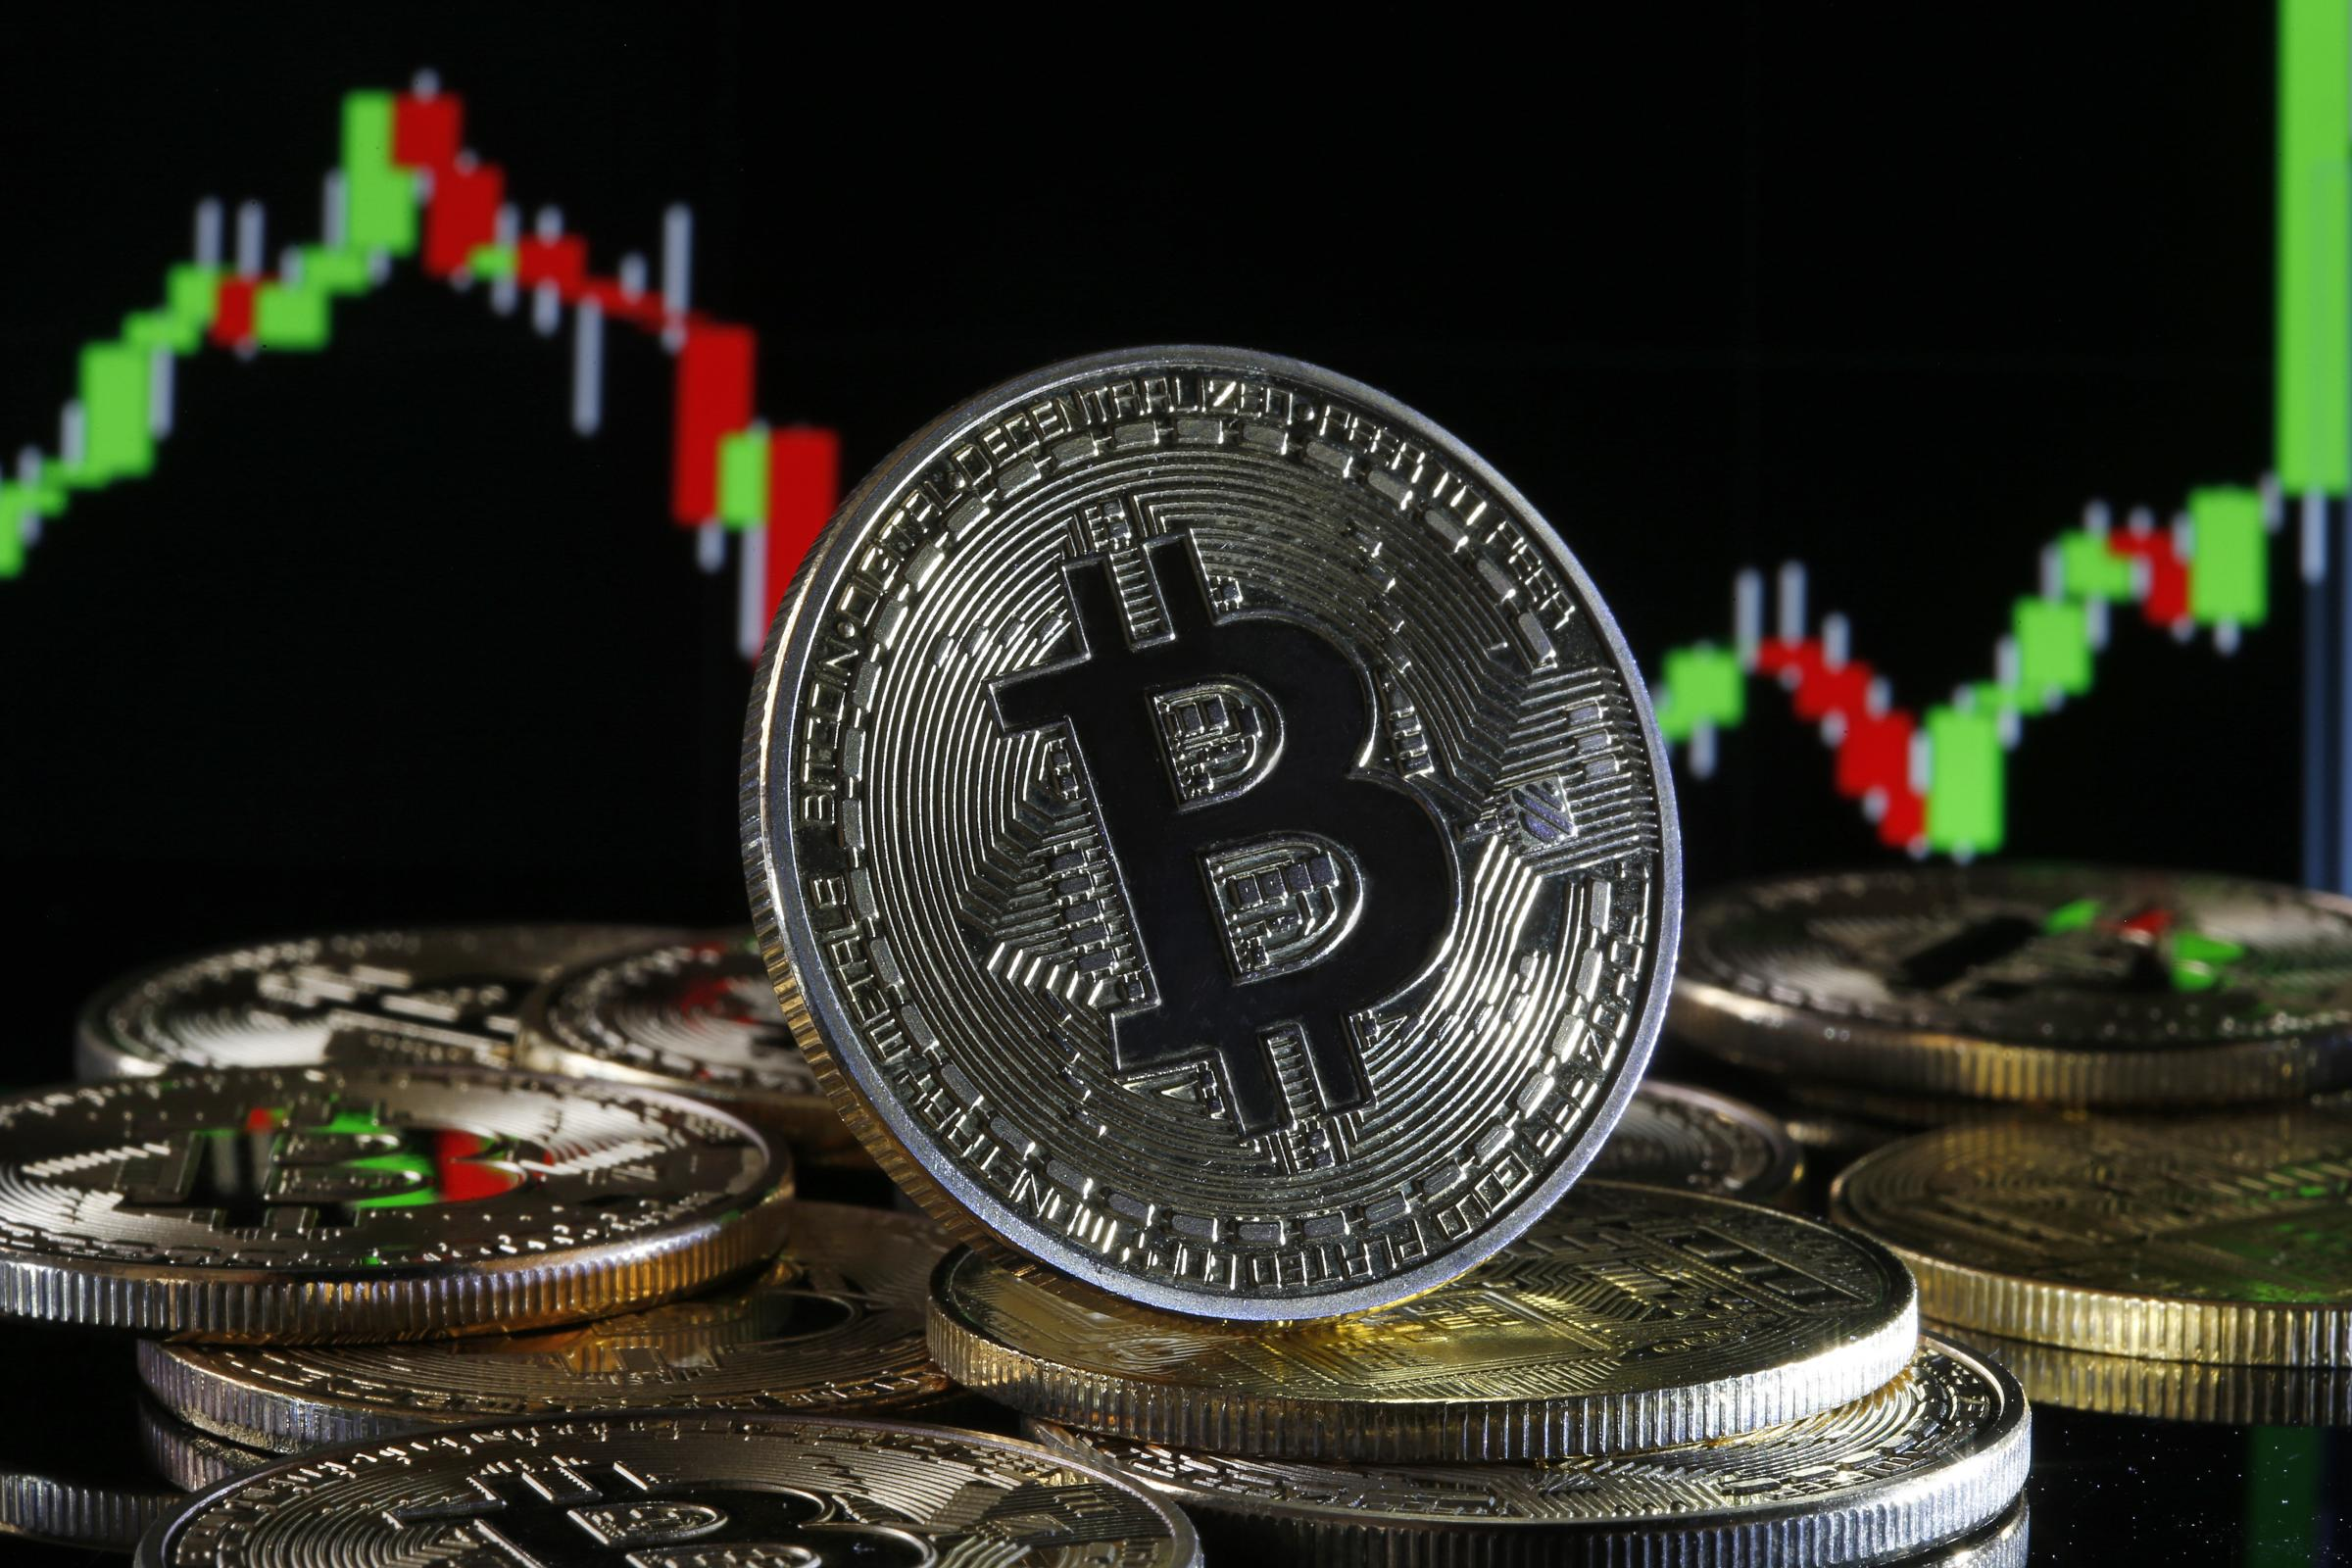 Could bitcoin be a good investment?